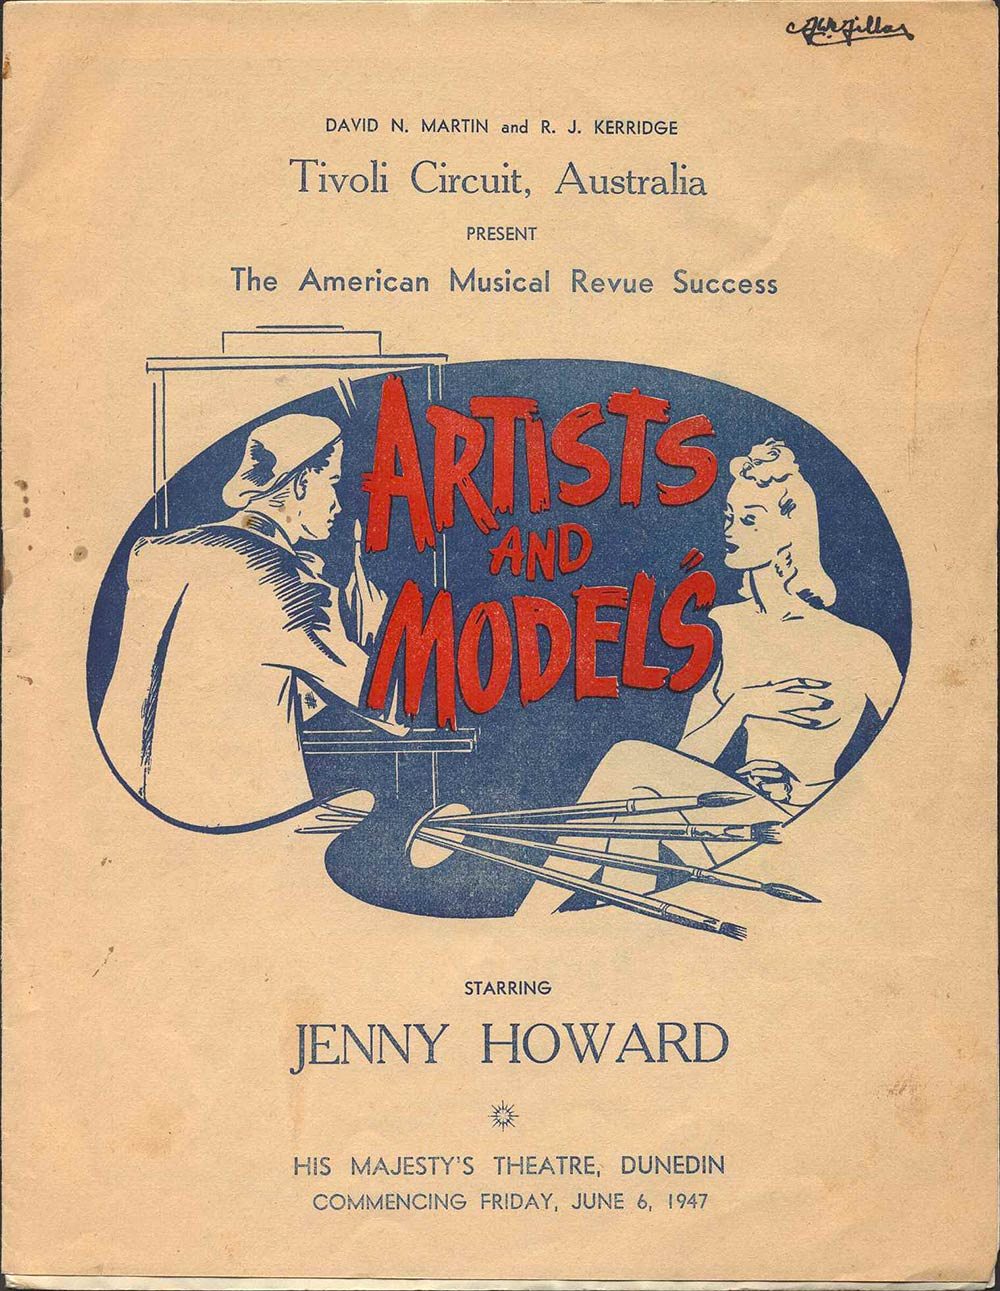 <em>Artists and models</em>. Ralton R. James. (Tivoli Circuit). His Majesty's Theatre, Dunedin, June 6, 1947.